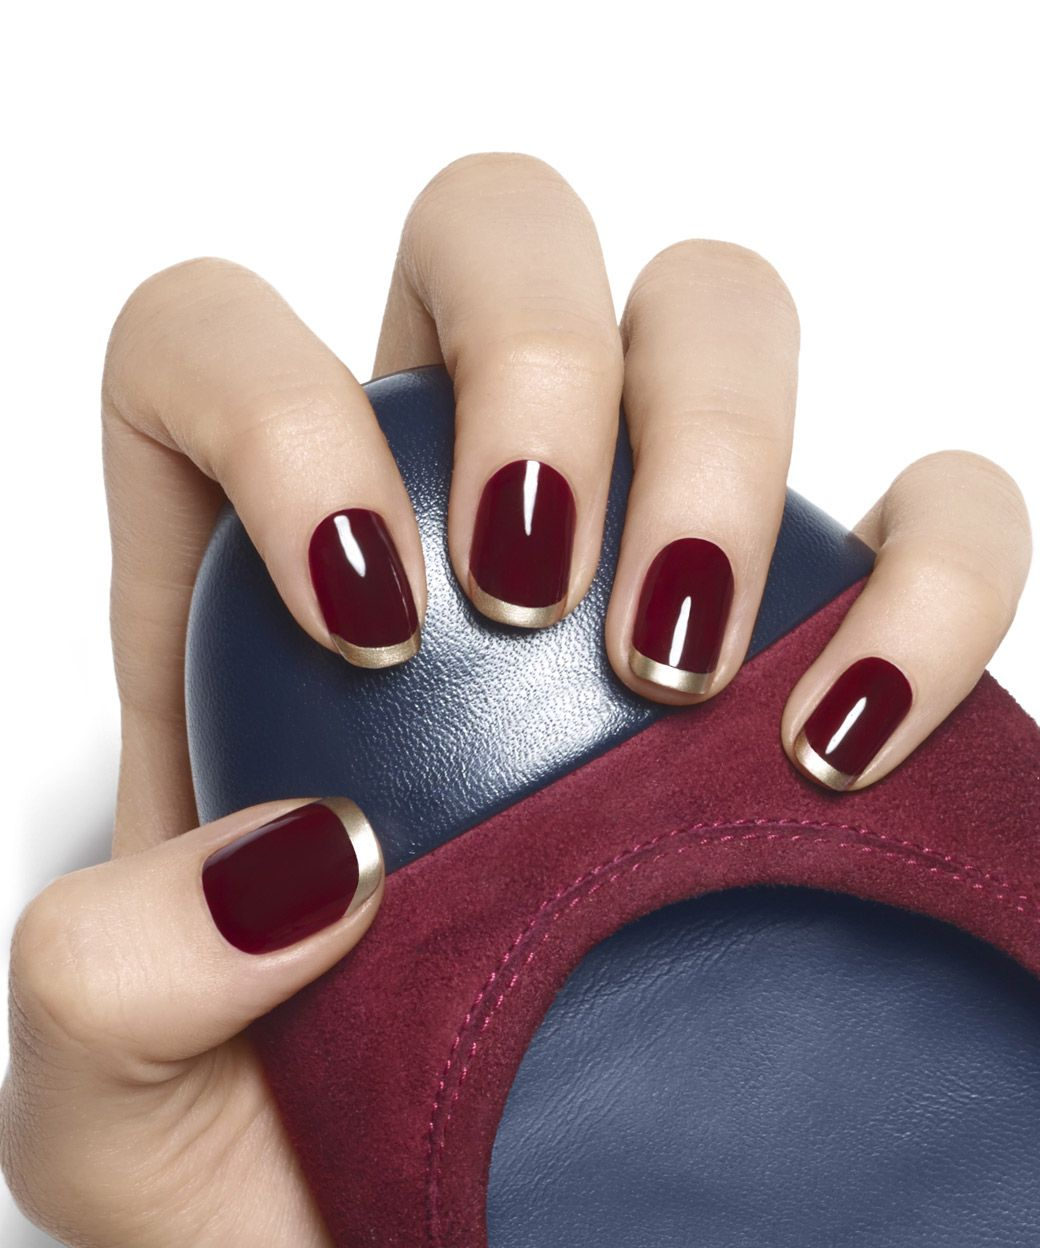 Essie Looks Example - Newest Nail Looks, Trends & Nail Color ...